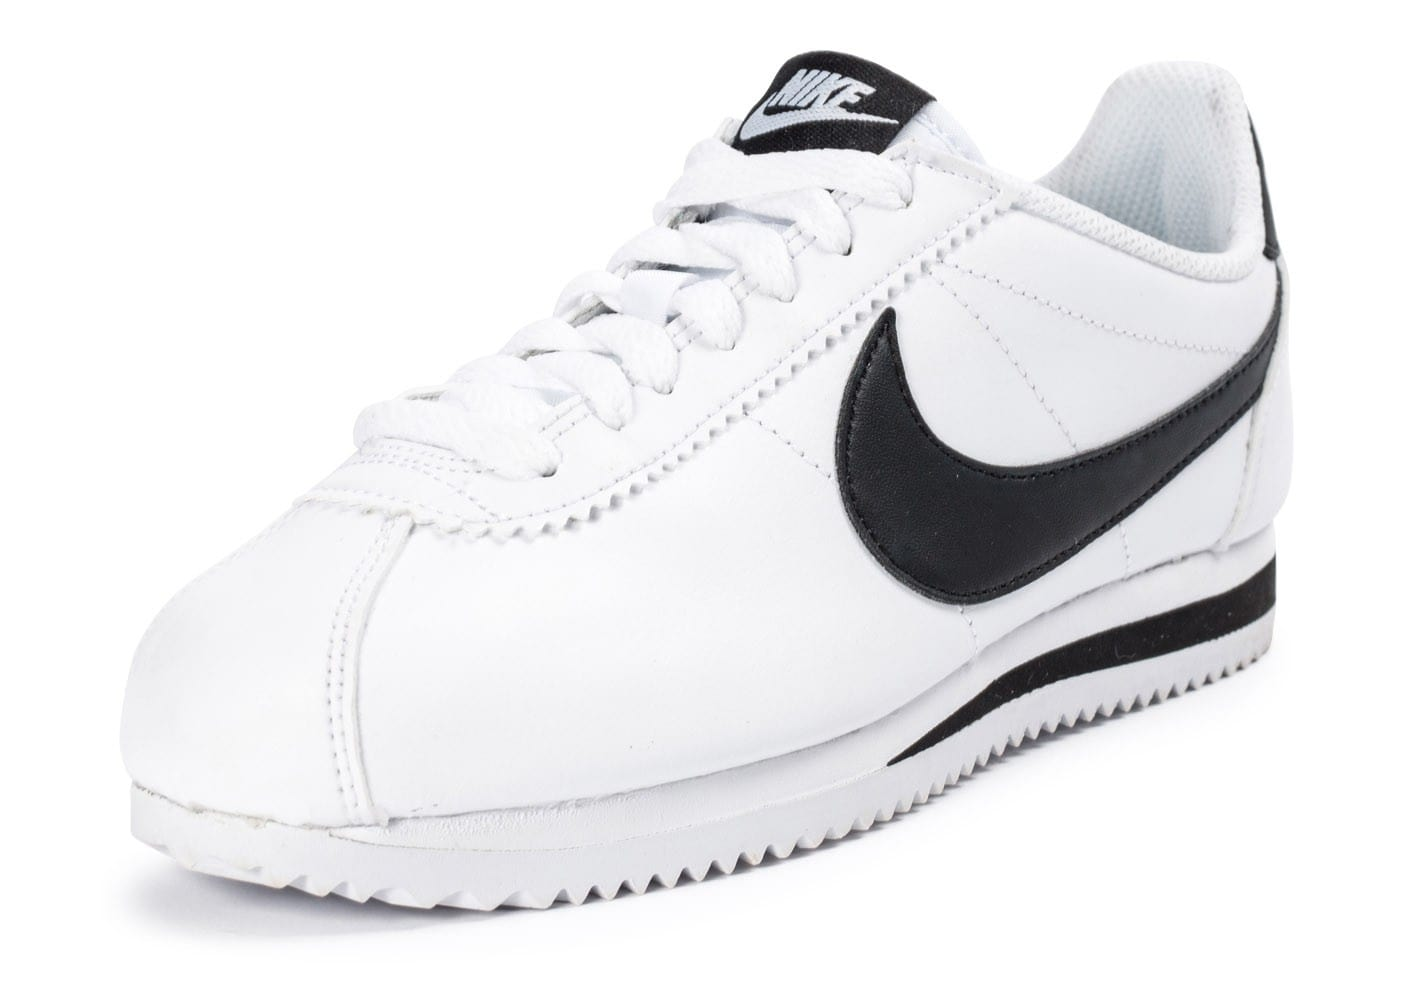 nike classic cortez leather blanche et noire chaussures toutes les baskets sold es chausport. Black Bedroom Furniture Sets. Home Design Ideas